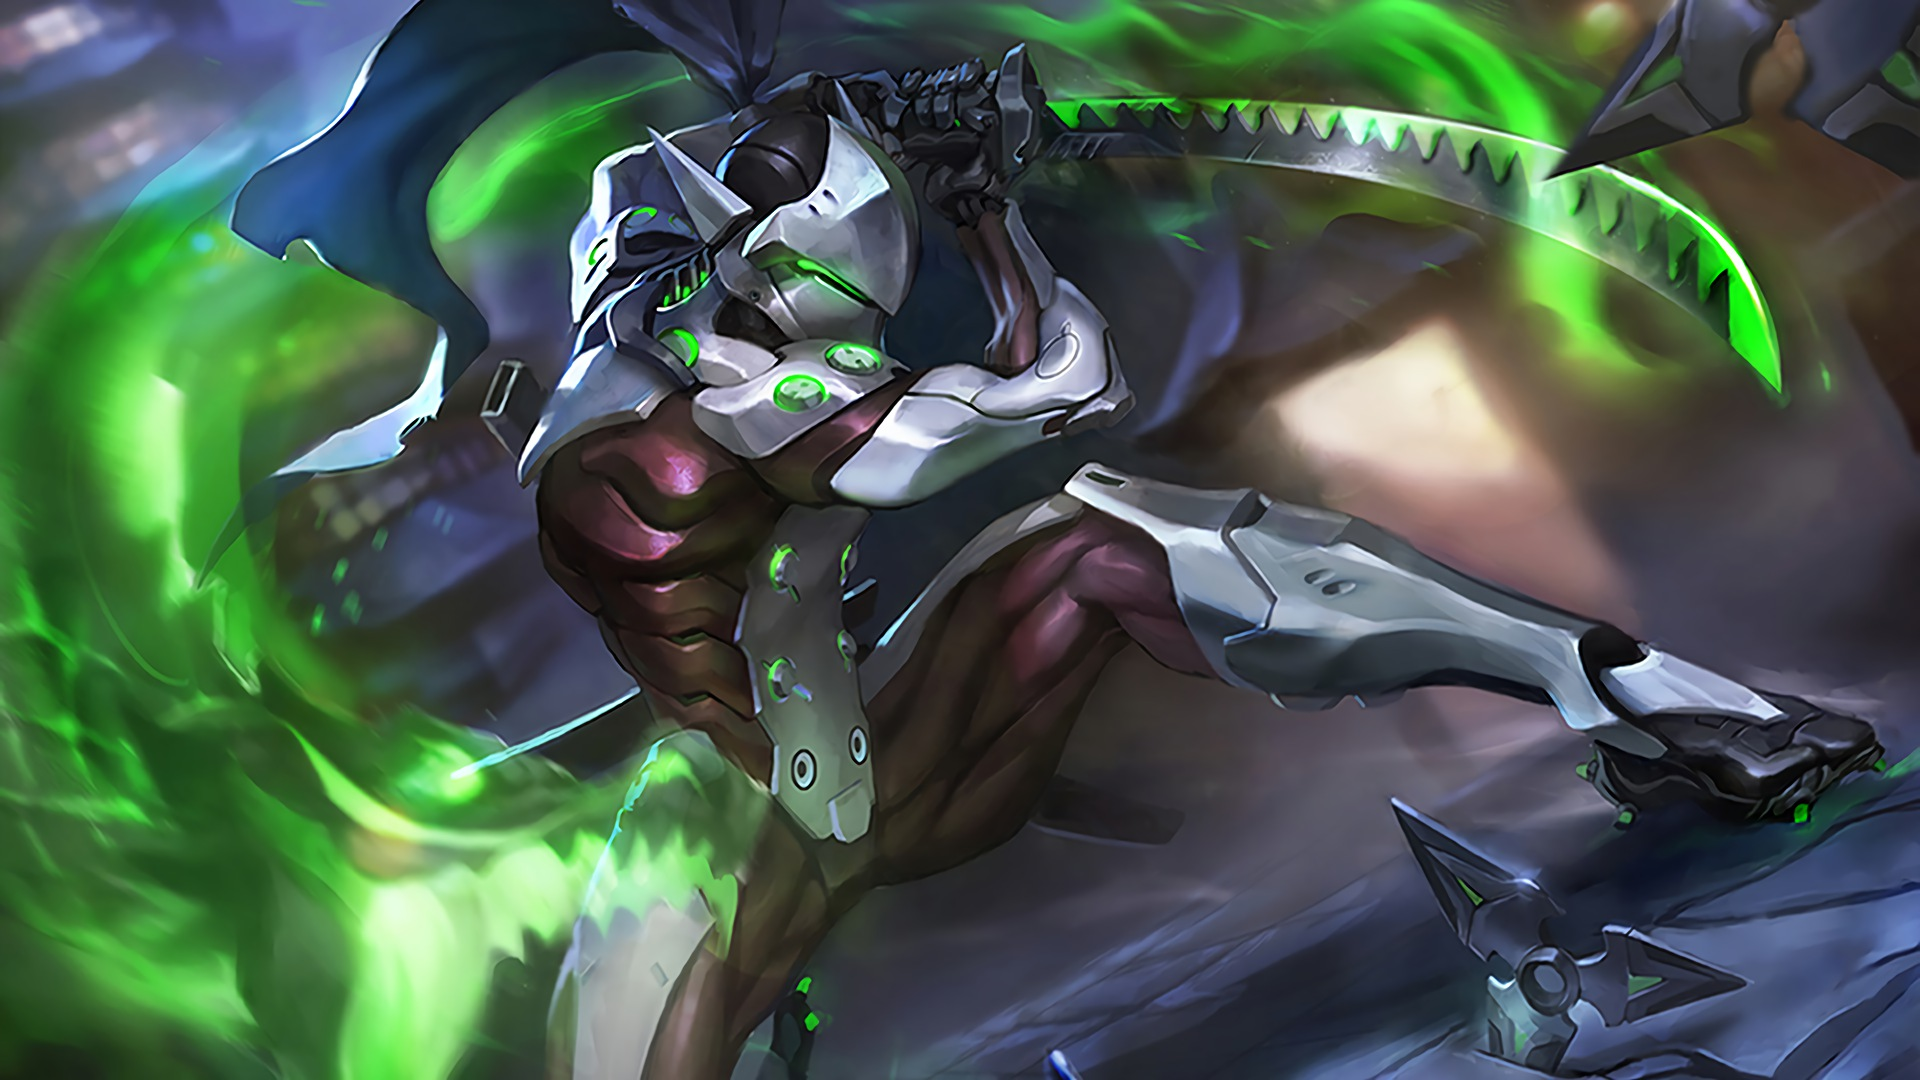 Image Result For Genji Animated Wallpaper Overwatch